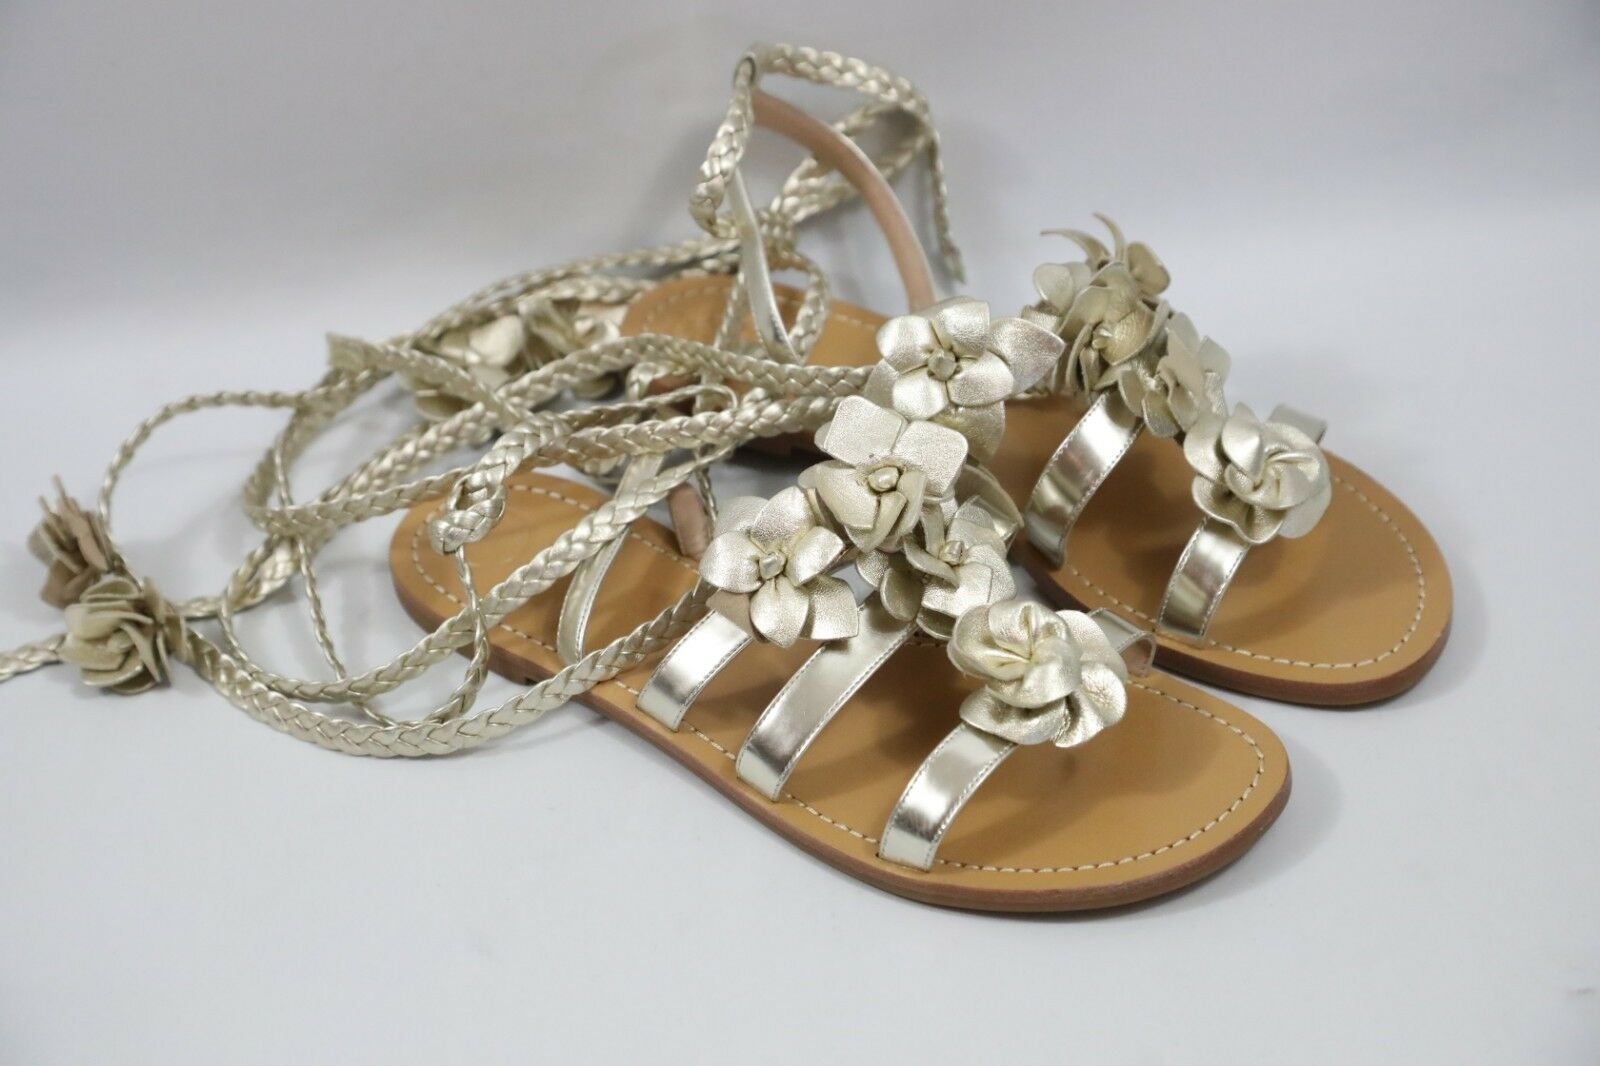 128 Tory Burch Blossom Gladiator Sandals Size 10  retail  325